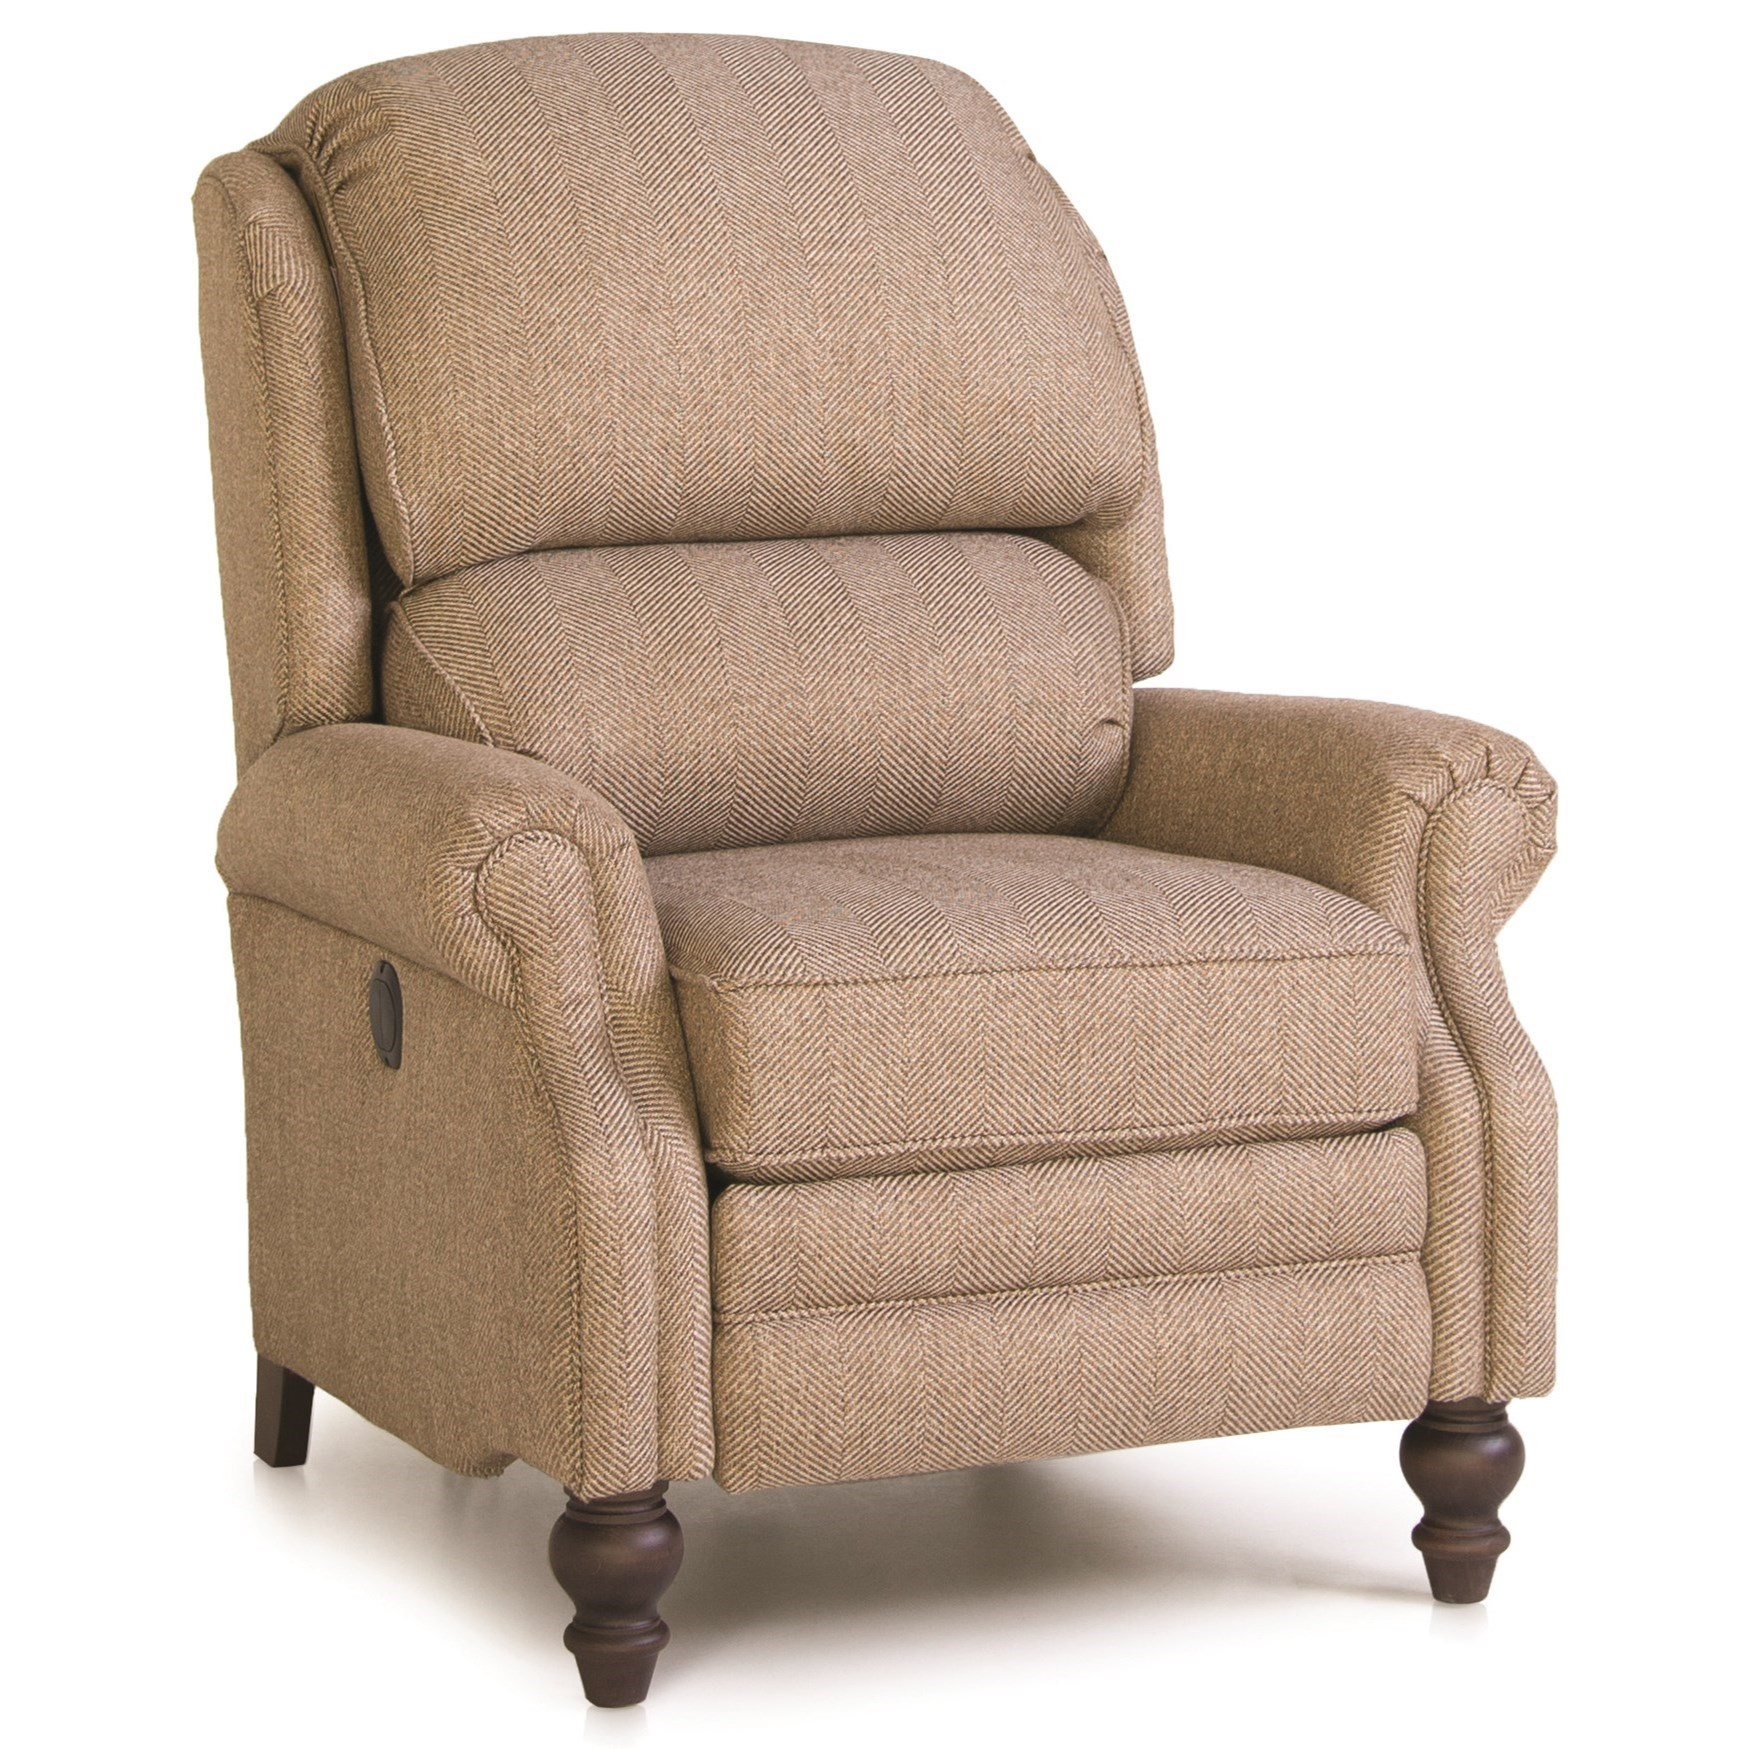 705 Pressback Reclining Chair by Smith Brothers at Saugerties Furniture Mart